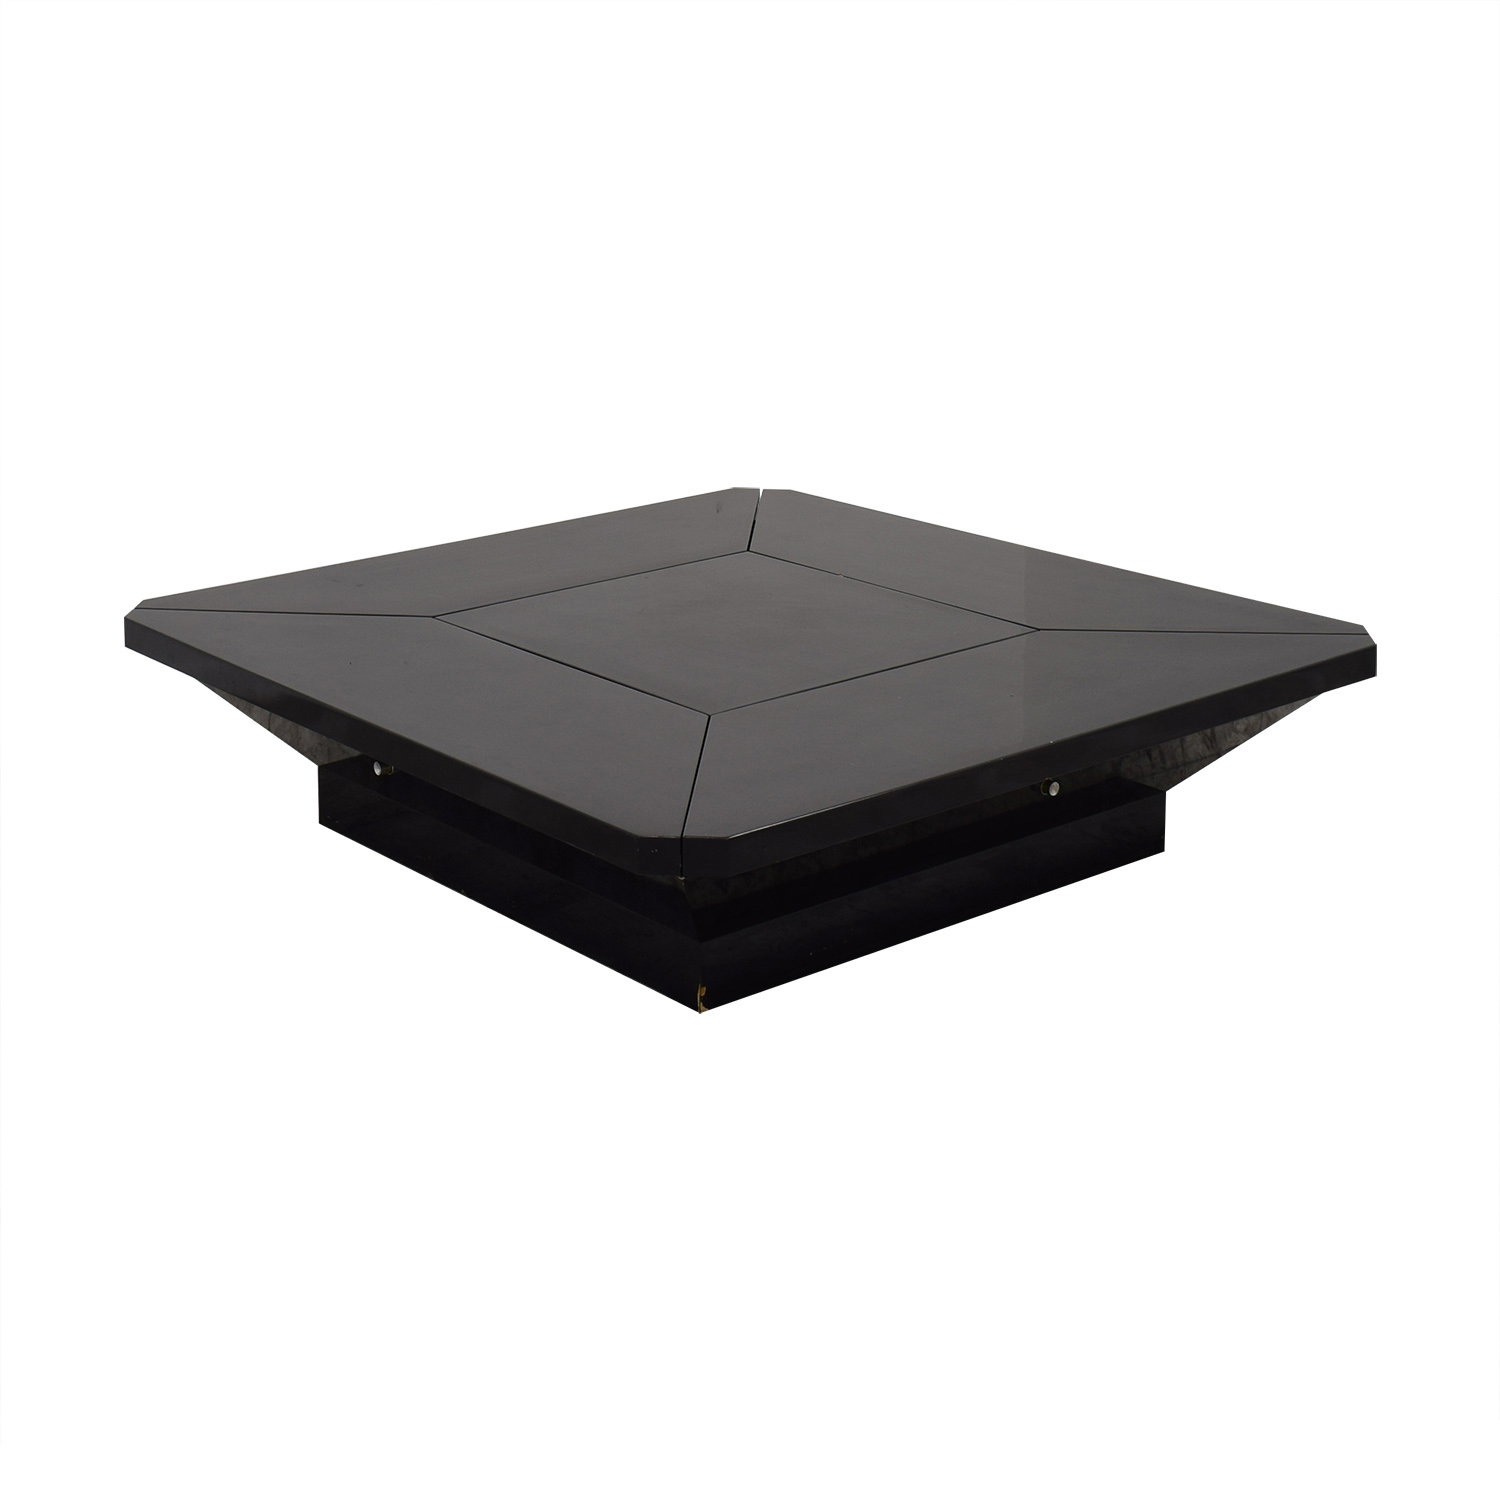 Steelcase Transforming Lift Top Coffee Table / Coffee Tables